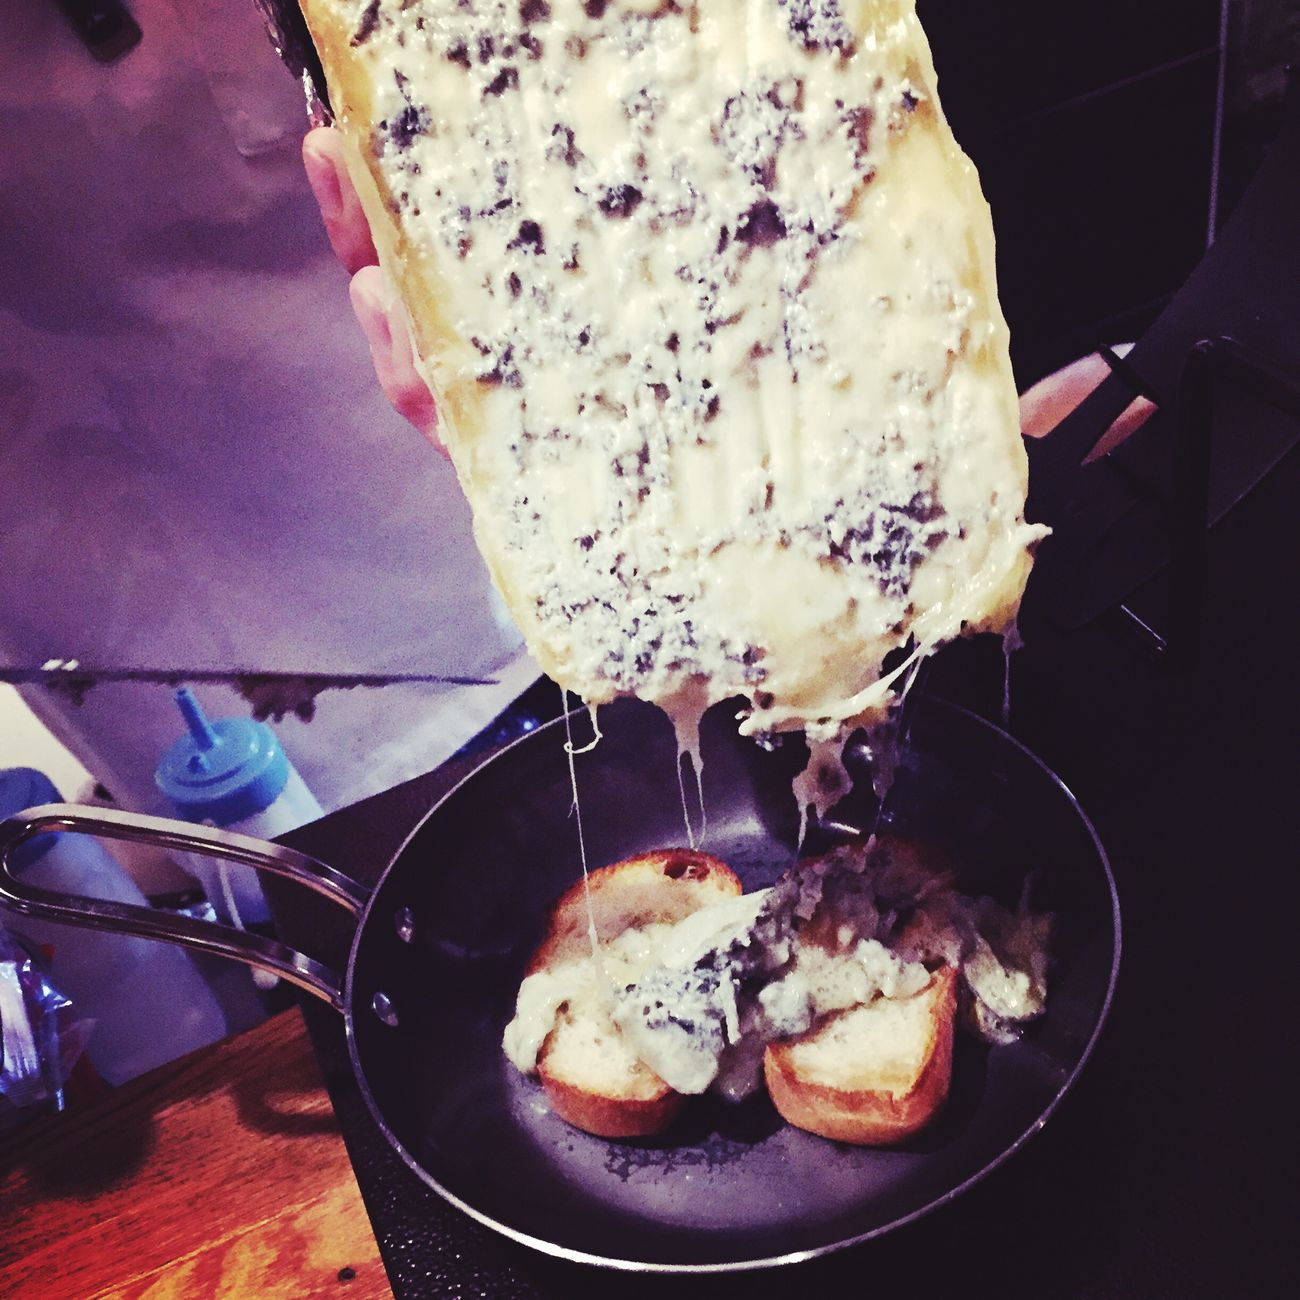 Blue cheese Raclette